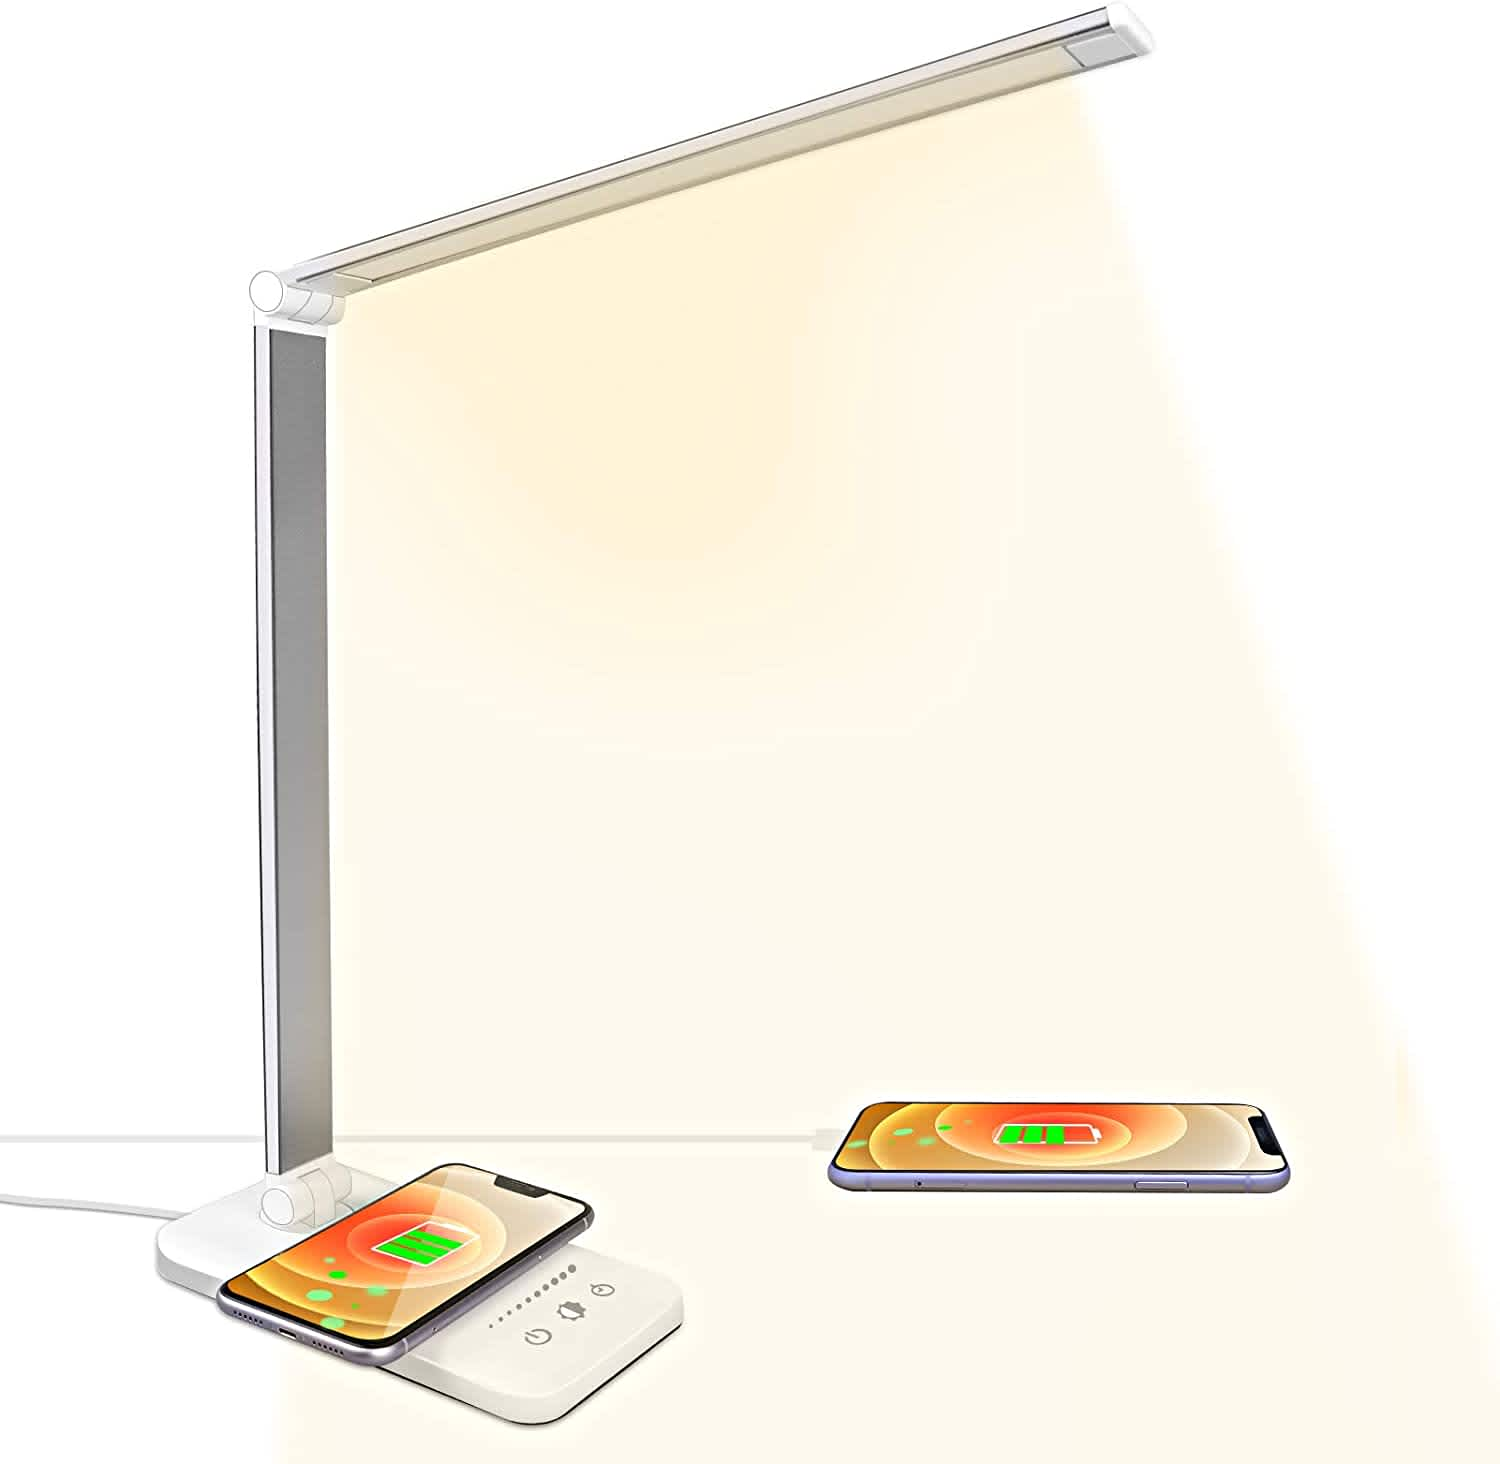 A3A ACADGQ LED Desk Lamp with Wireless Charger